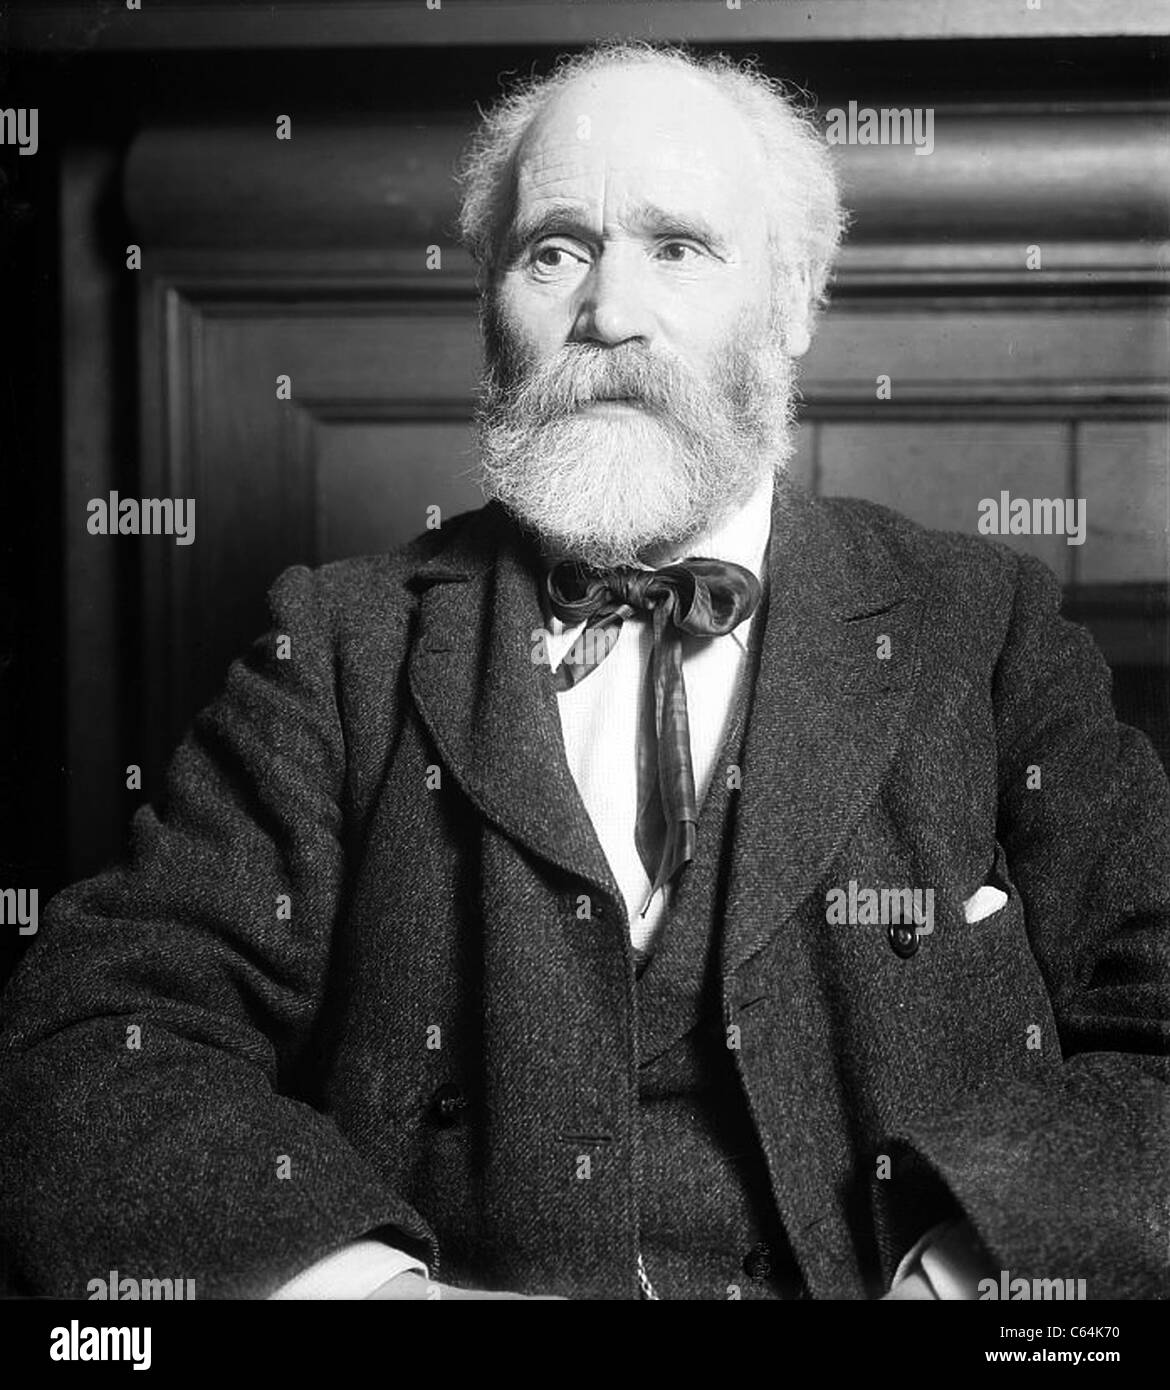 KEIR HARDIE (1856-1915) Scottish socialist leader and one of the founders of the modern British Labour Party here - Stock Image